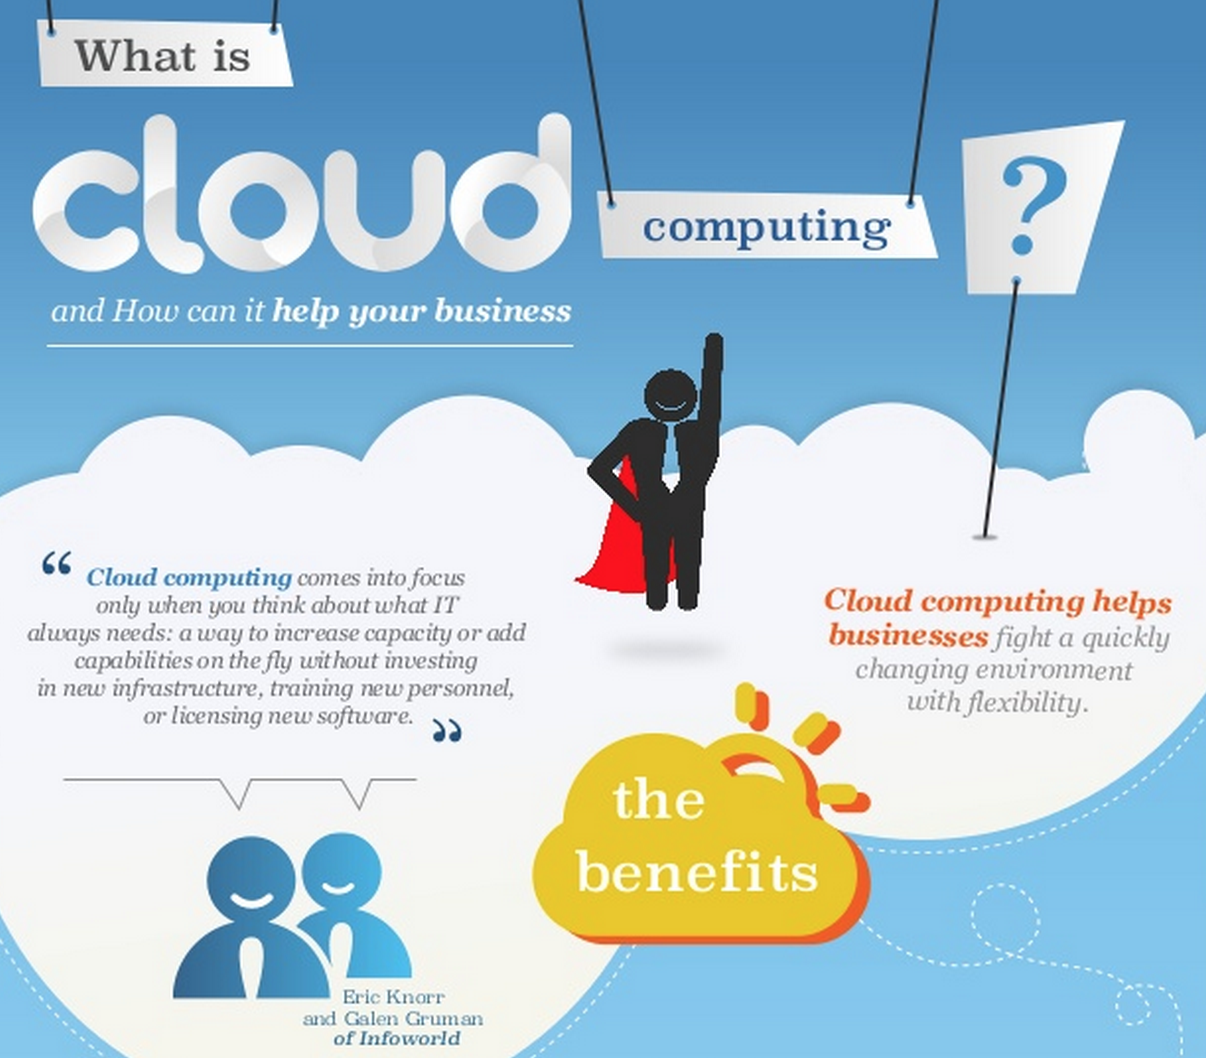 [Infographic] 12 Reasons Why Your Business Should Move to Cloud Computing 2018